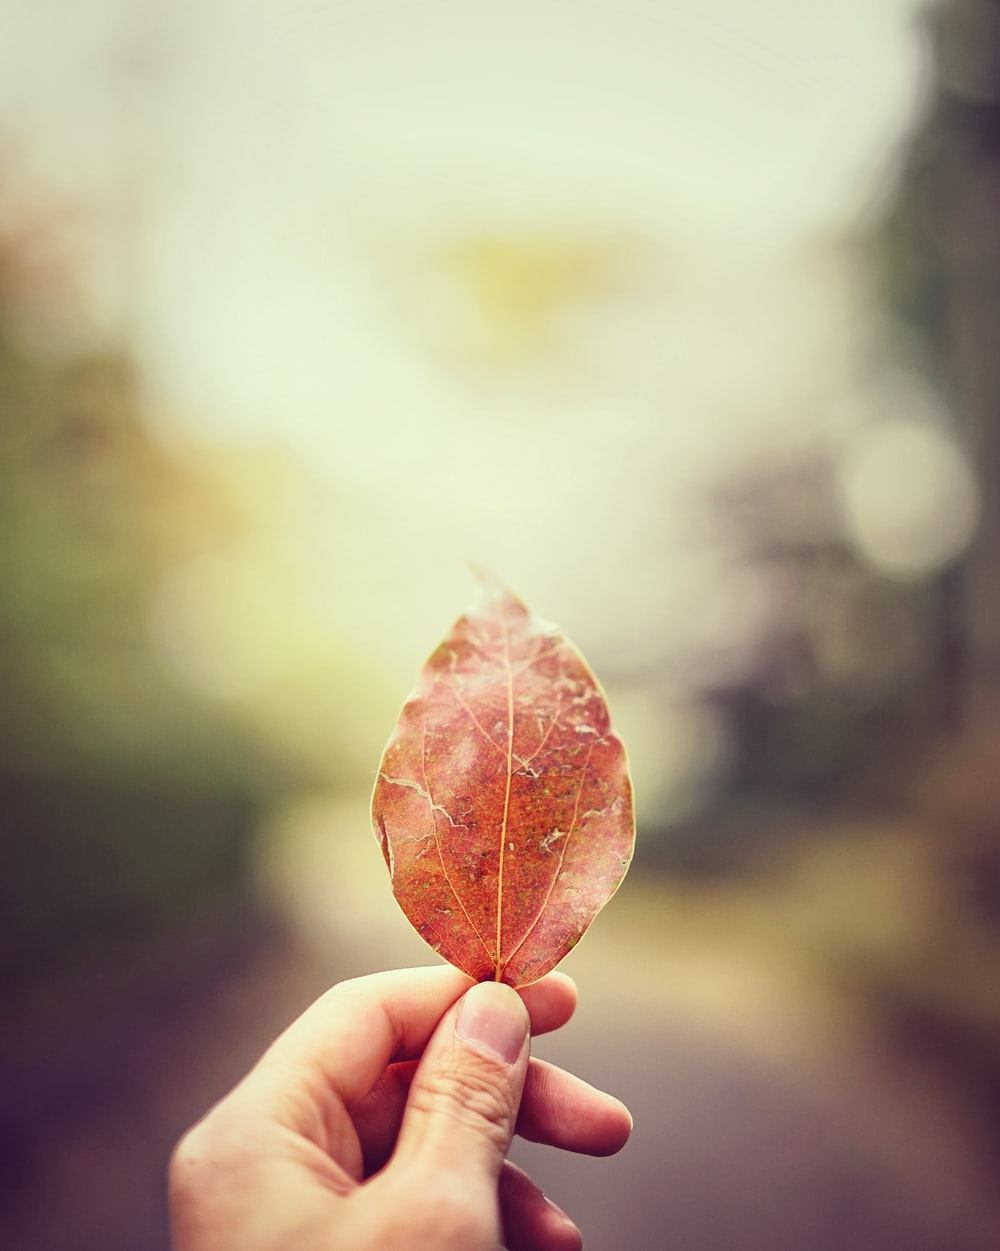 tilt shift lens photo of person holding dried leaf